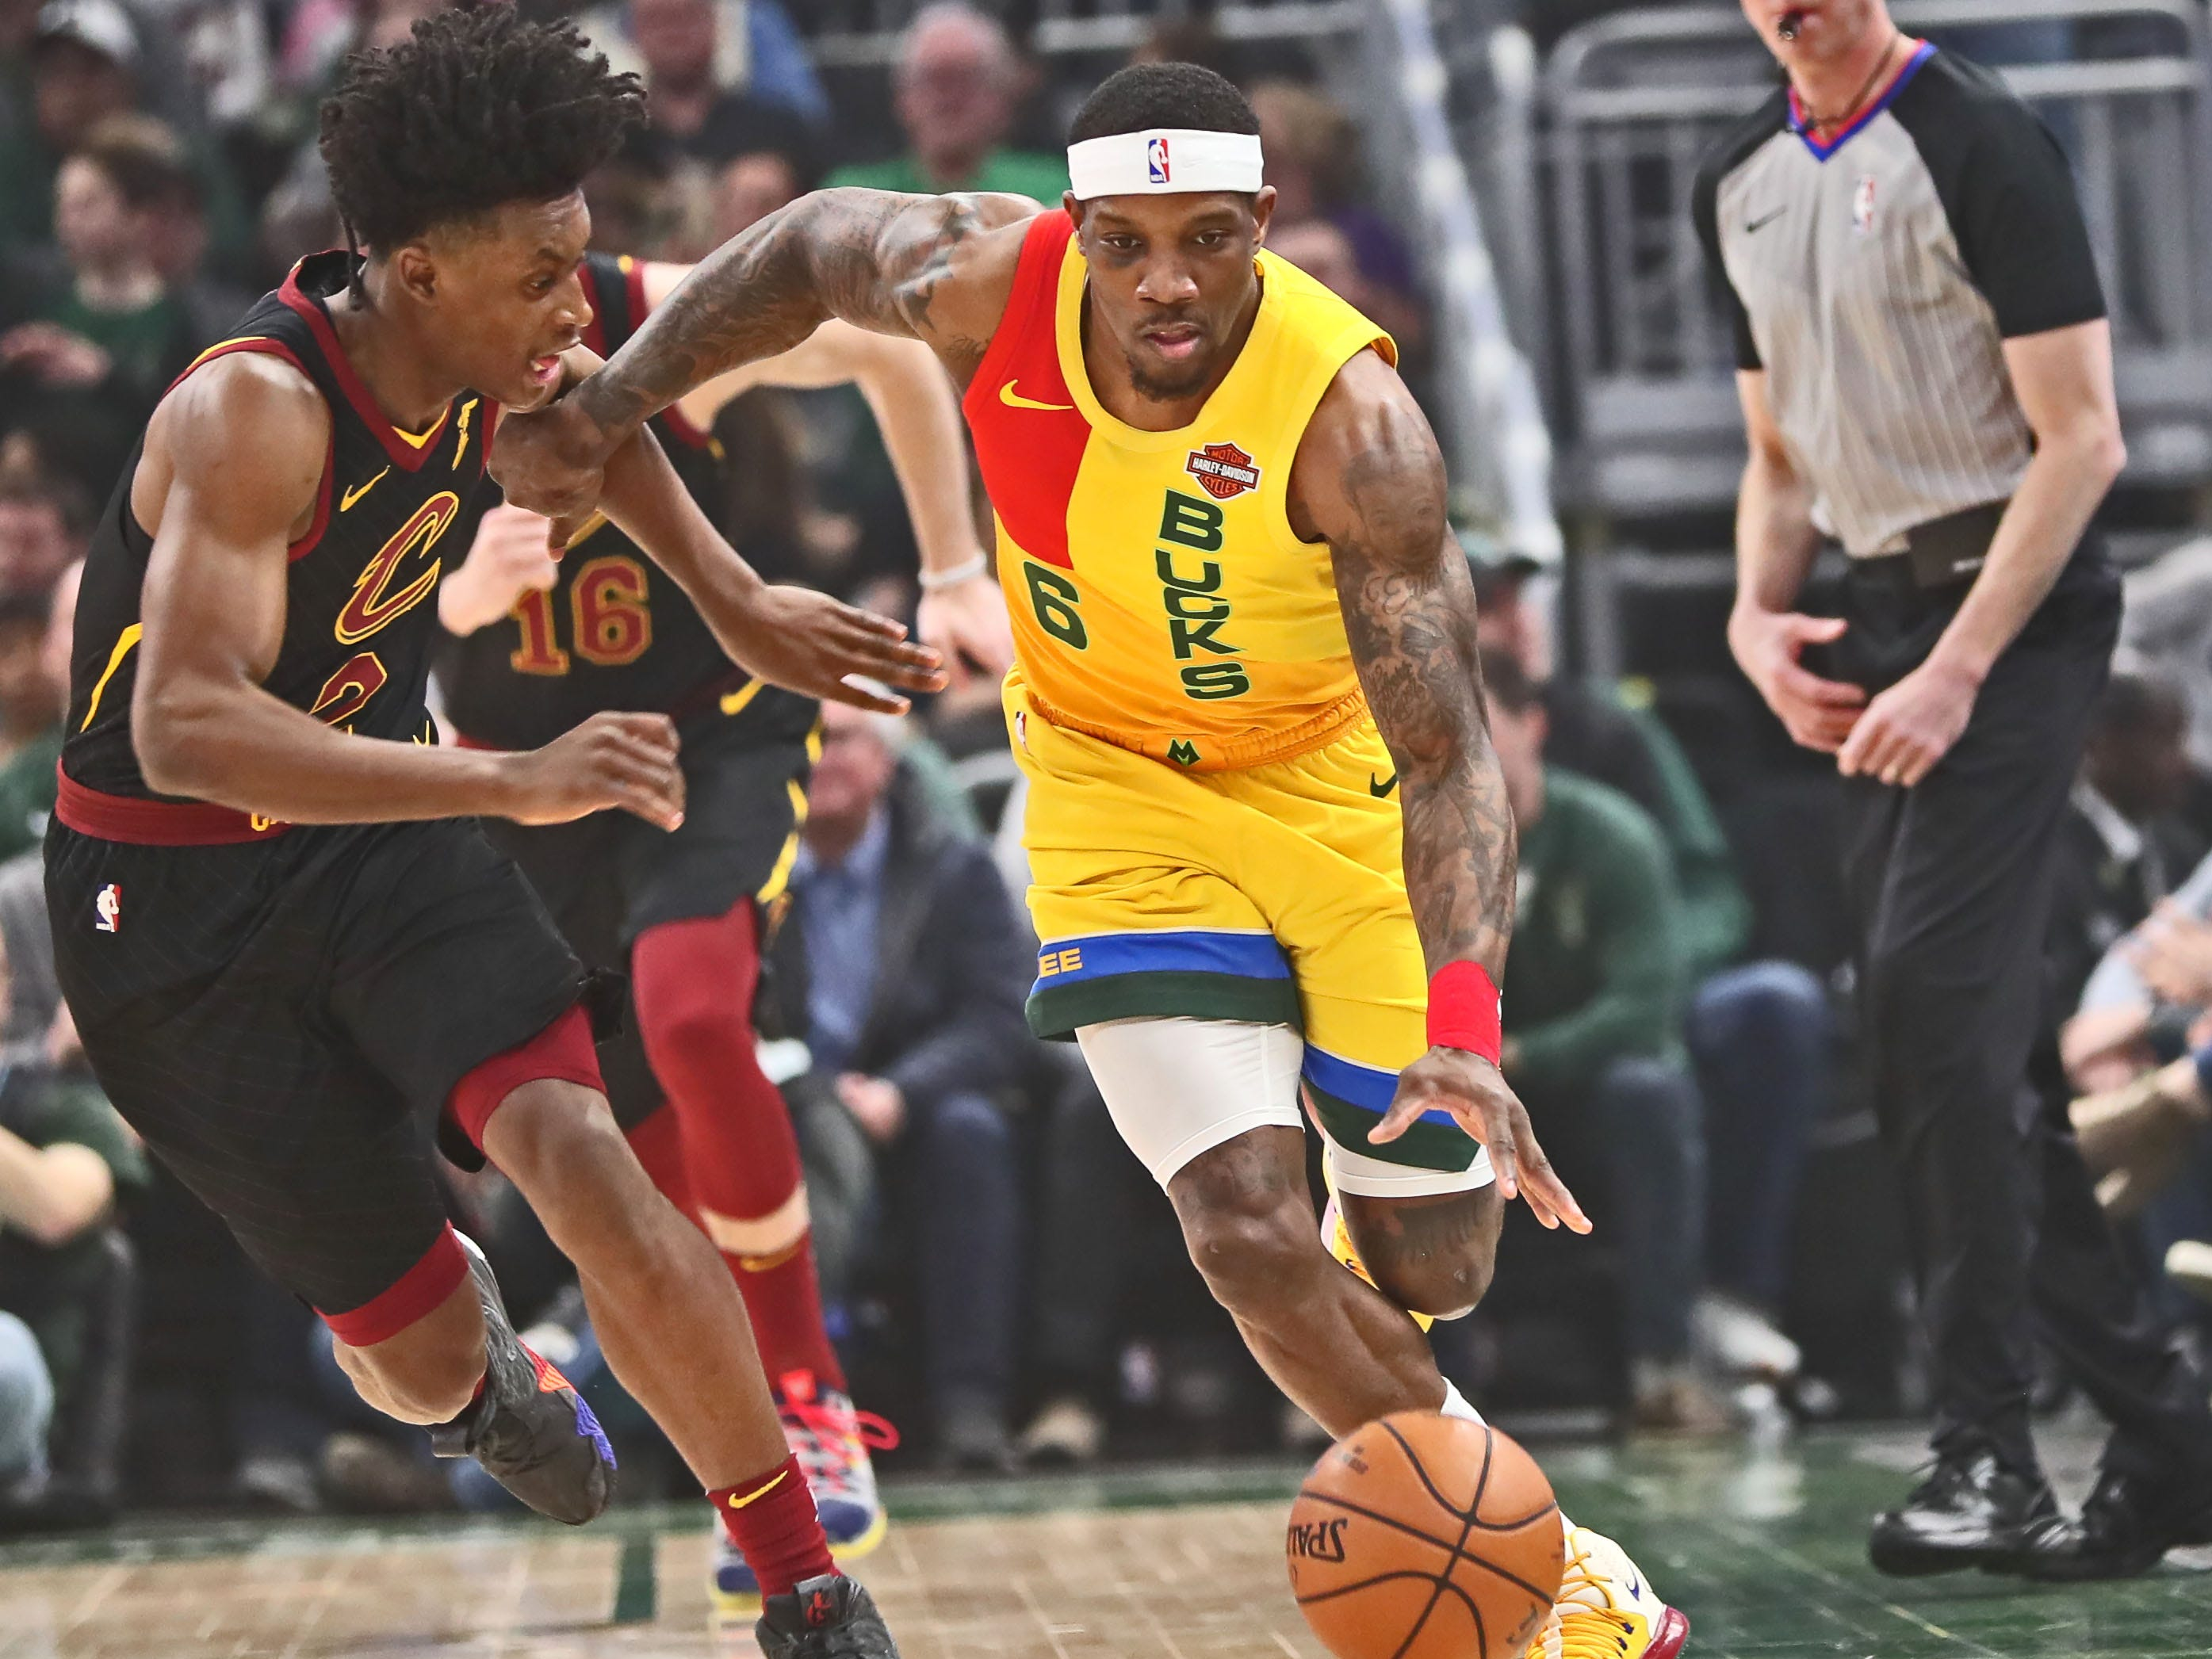 Bucks guard Eric Bledsoe barely stays in bounds as he brings the ball up the court against the Cavaliers' Collin Sexton on Sunday.